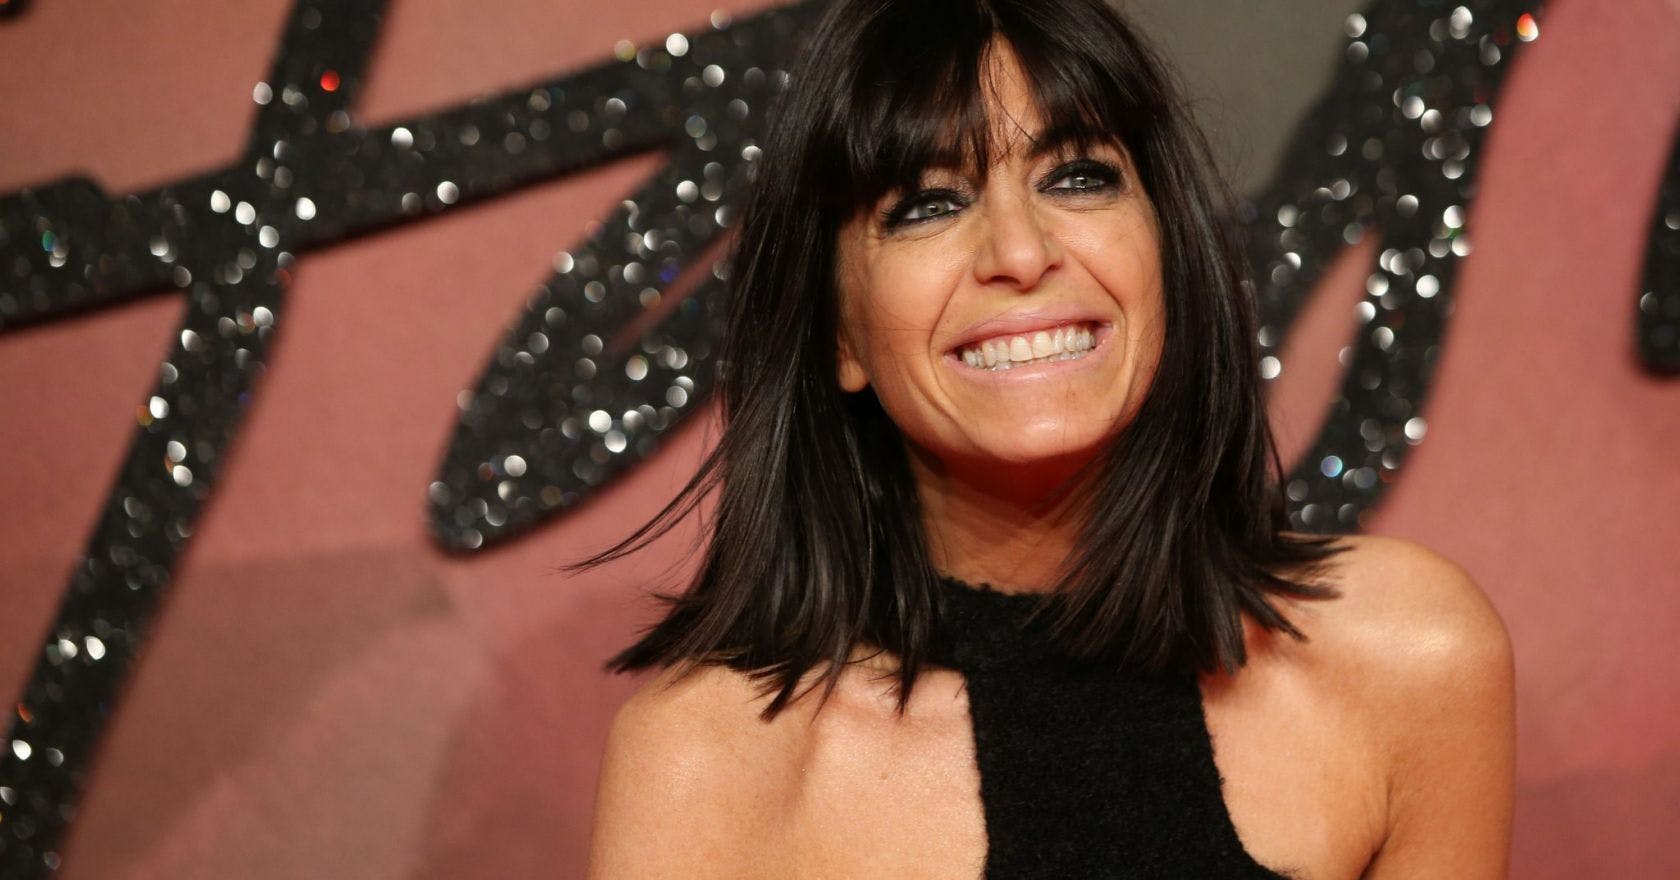 Claudia Winkleman gets refreshingly honest about her simple beauty routine during lockdown